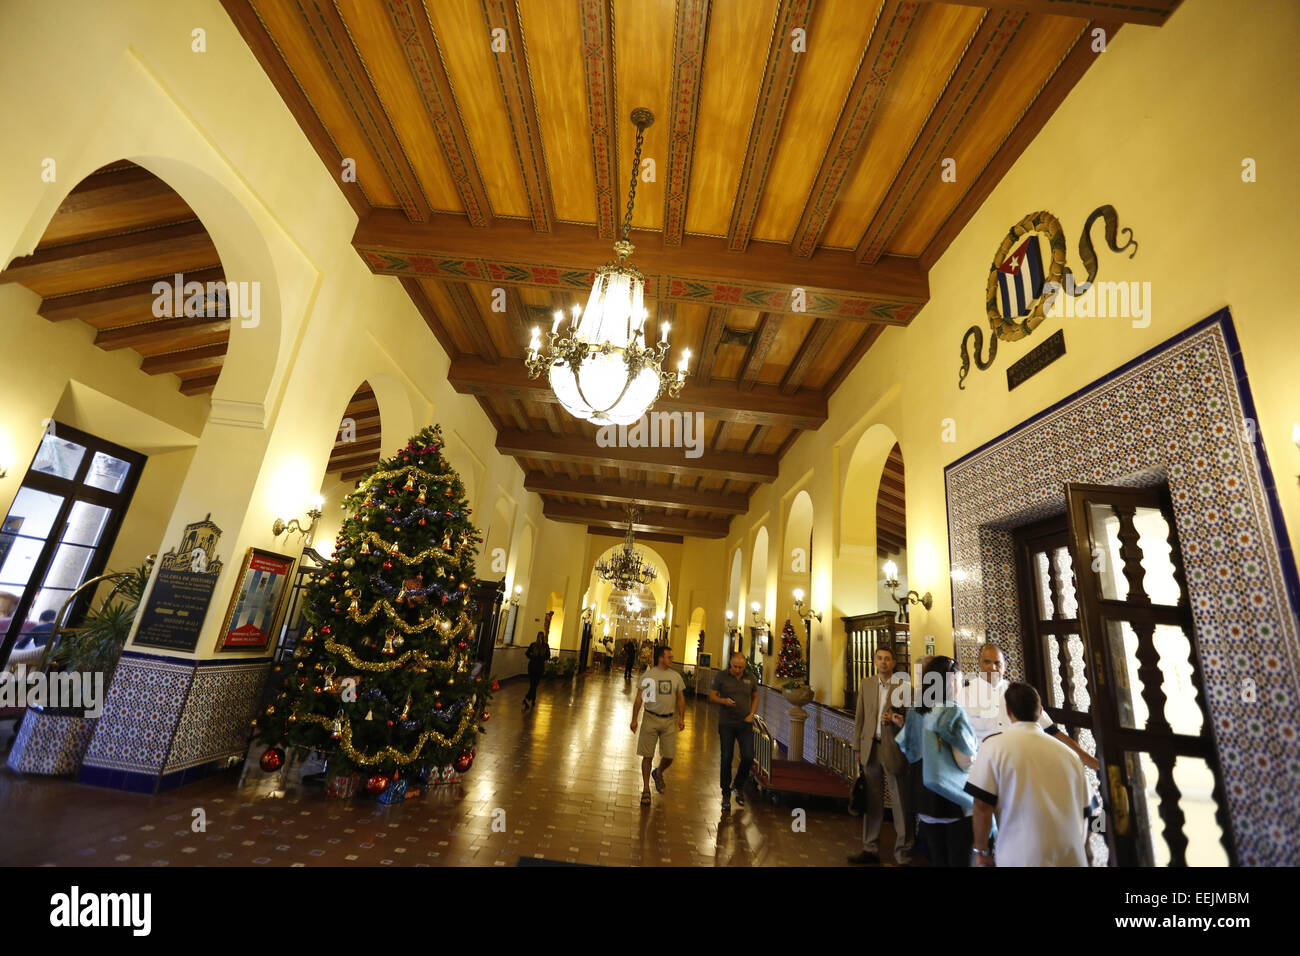 Havana cuba 19th dec 2014 the lobby of the hotel nacional de